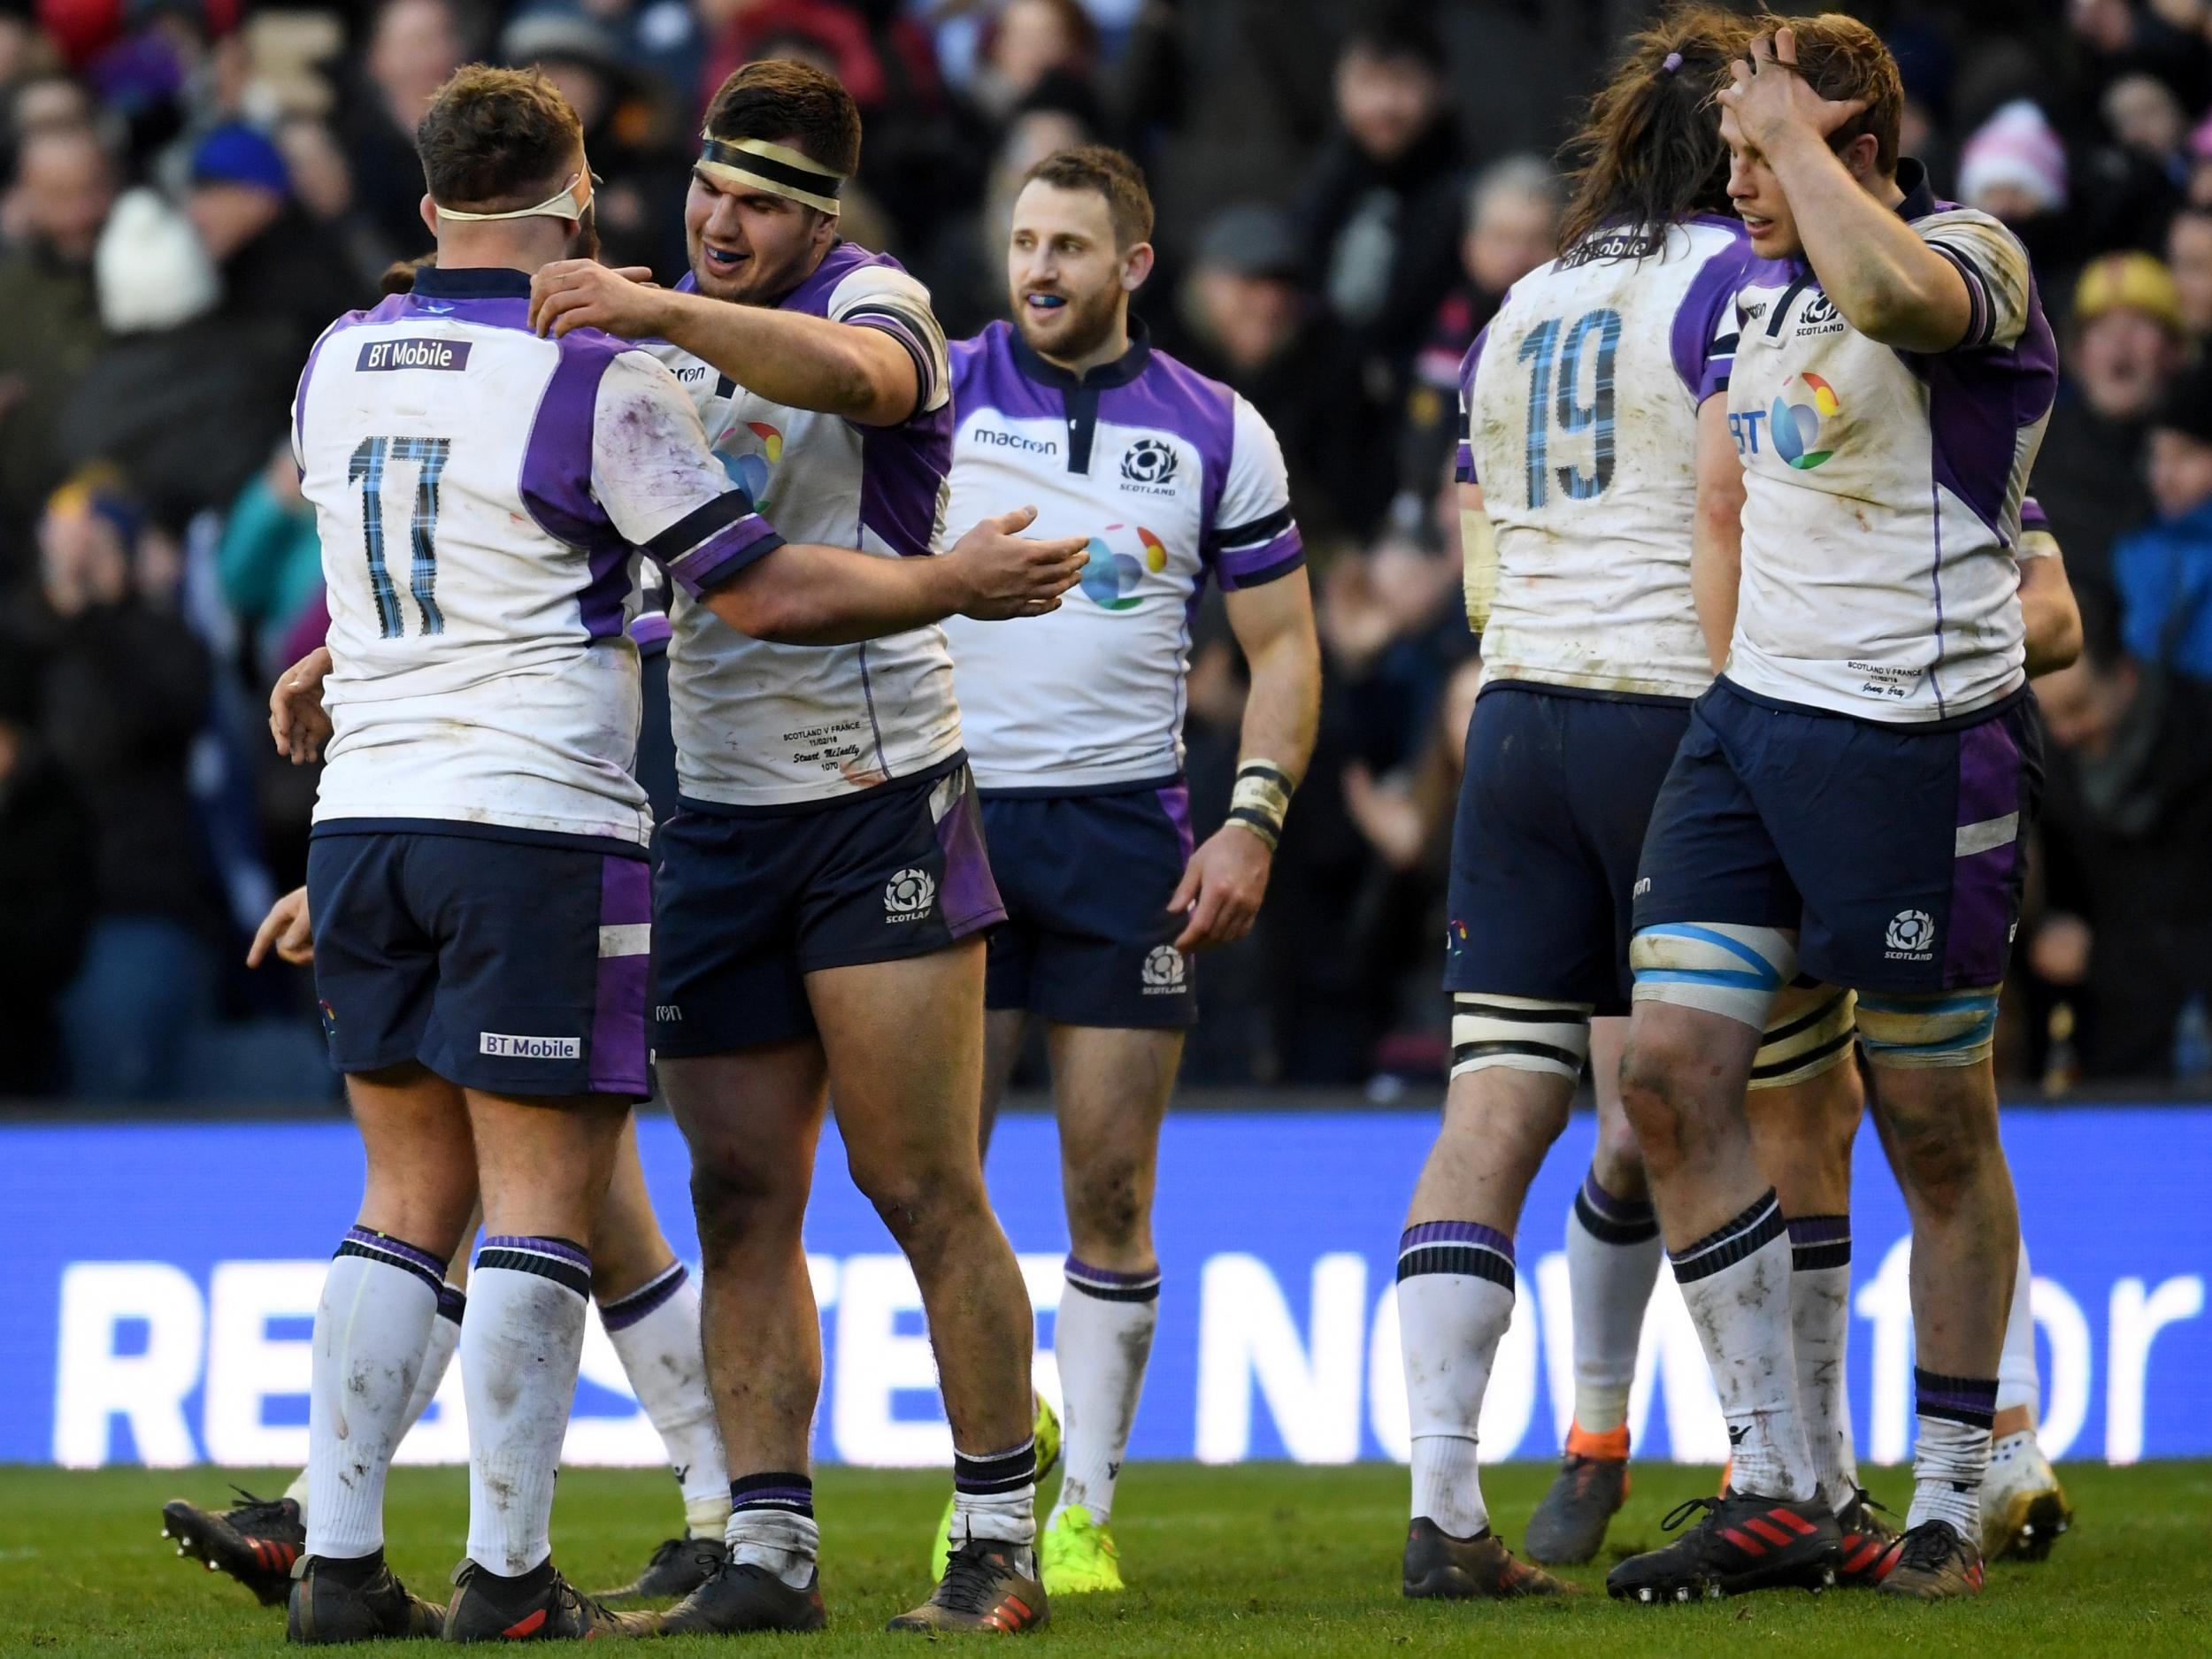 Scotland pick up first win in tight victory over free-running France